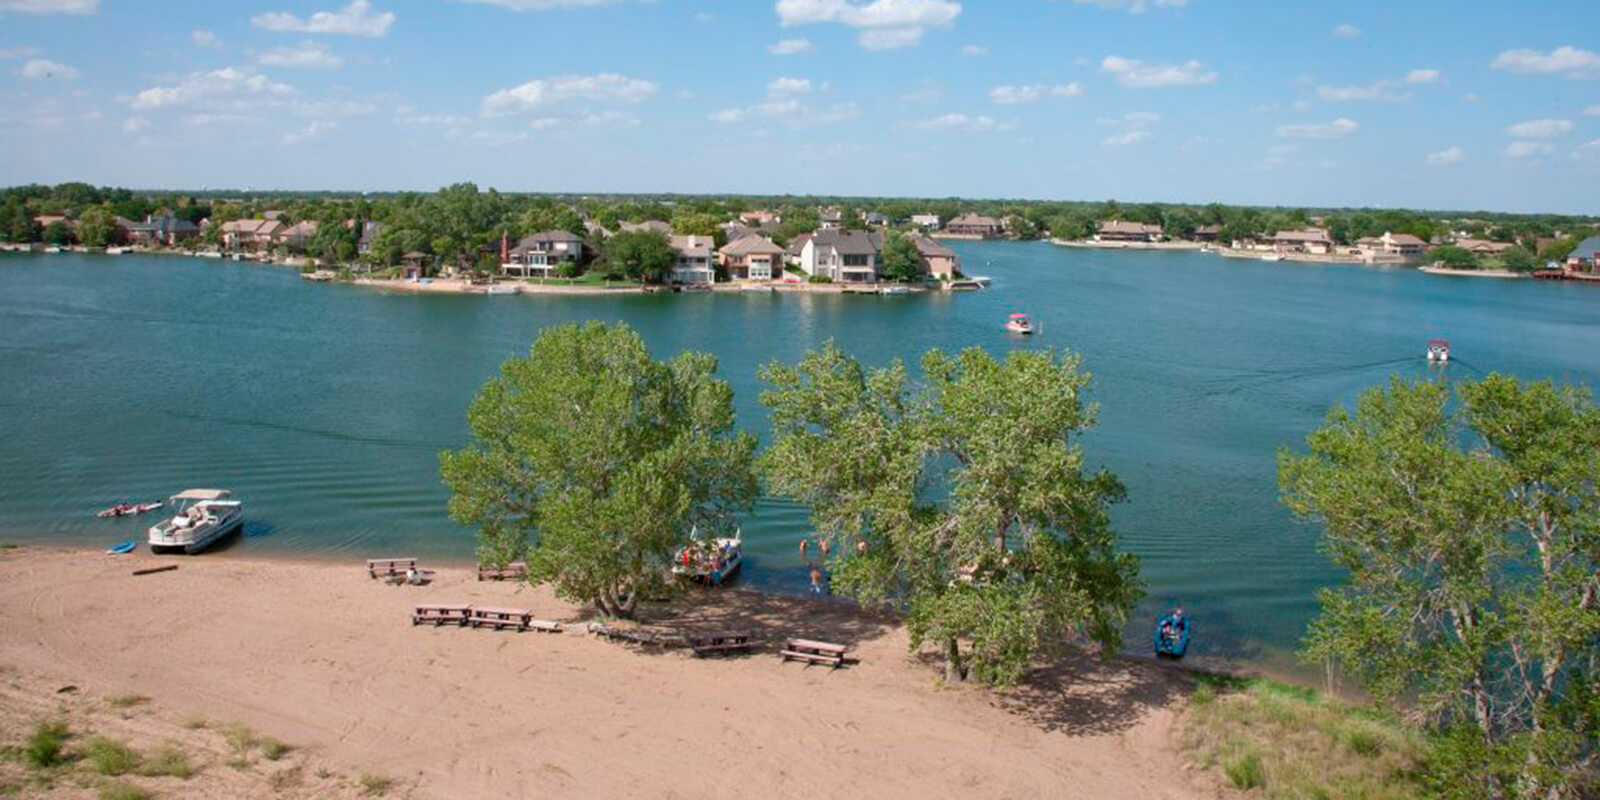 Aerial View of The Moorings Lakeside Neighborhood